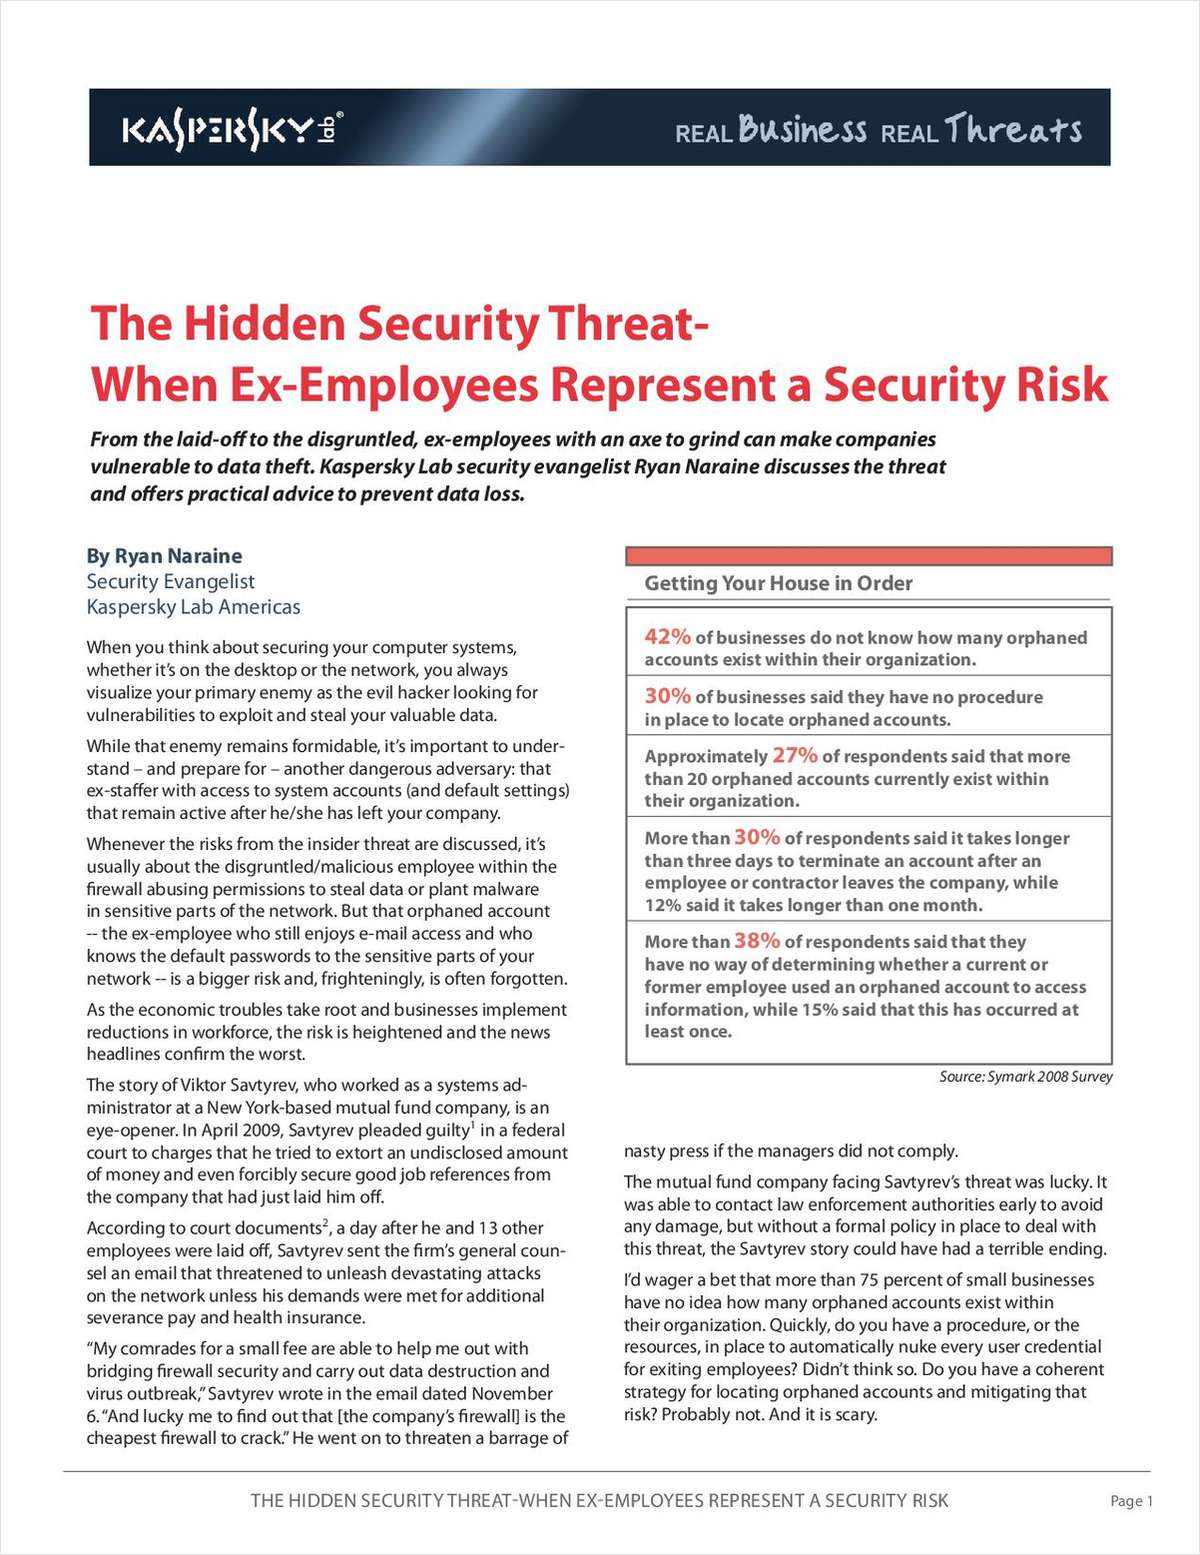 The Hidden Security Threat – When Ex-Employees Represent a Security Risk